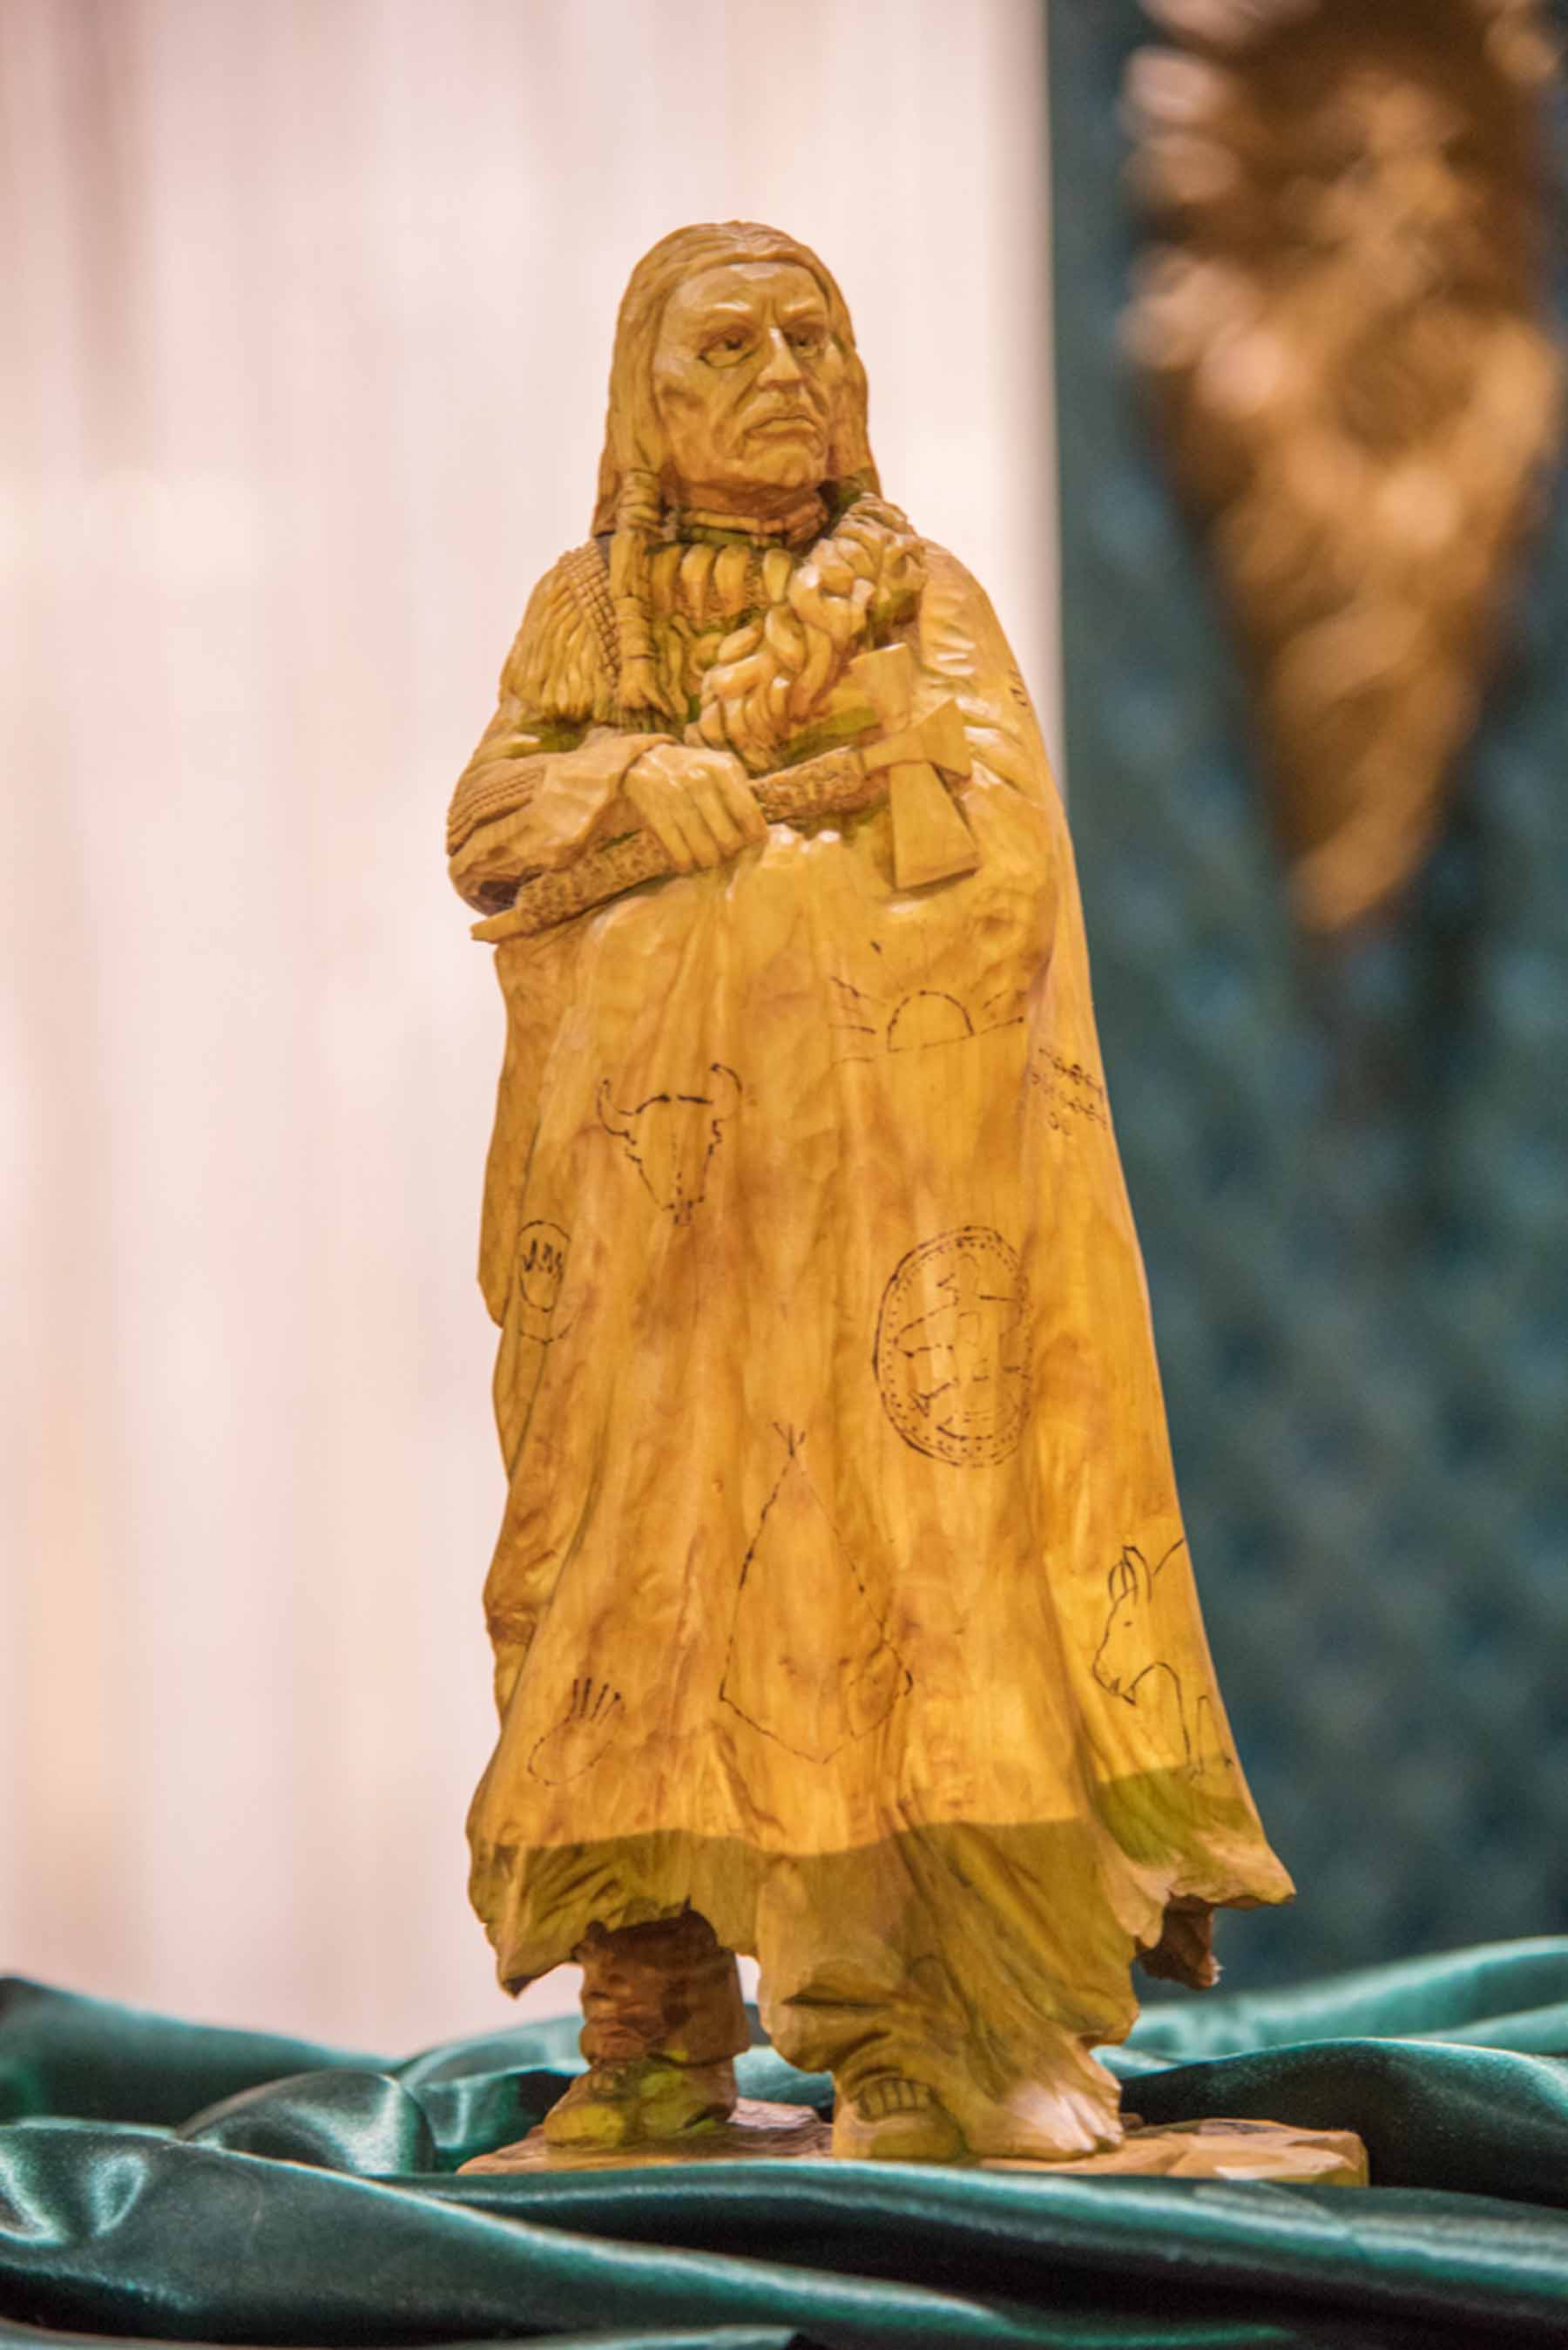 2015 Artistry in Wood, Dayton carving show. Show and candid photos. Feature exhibit with Vic Hood.